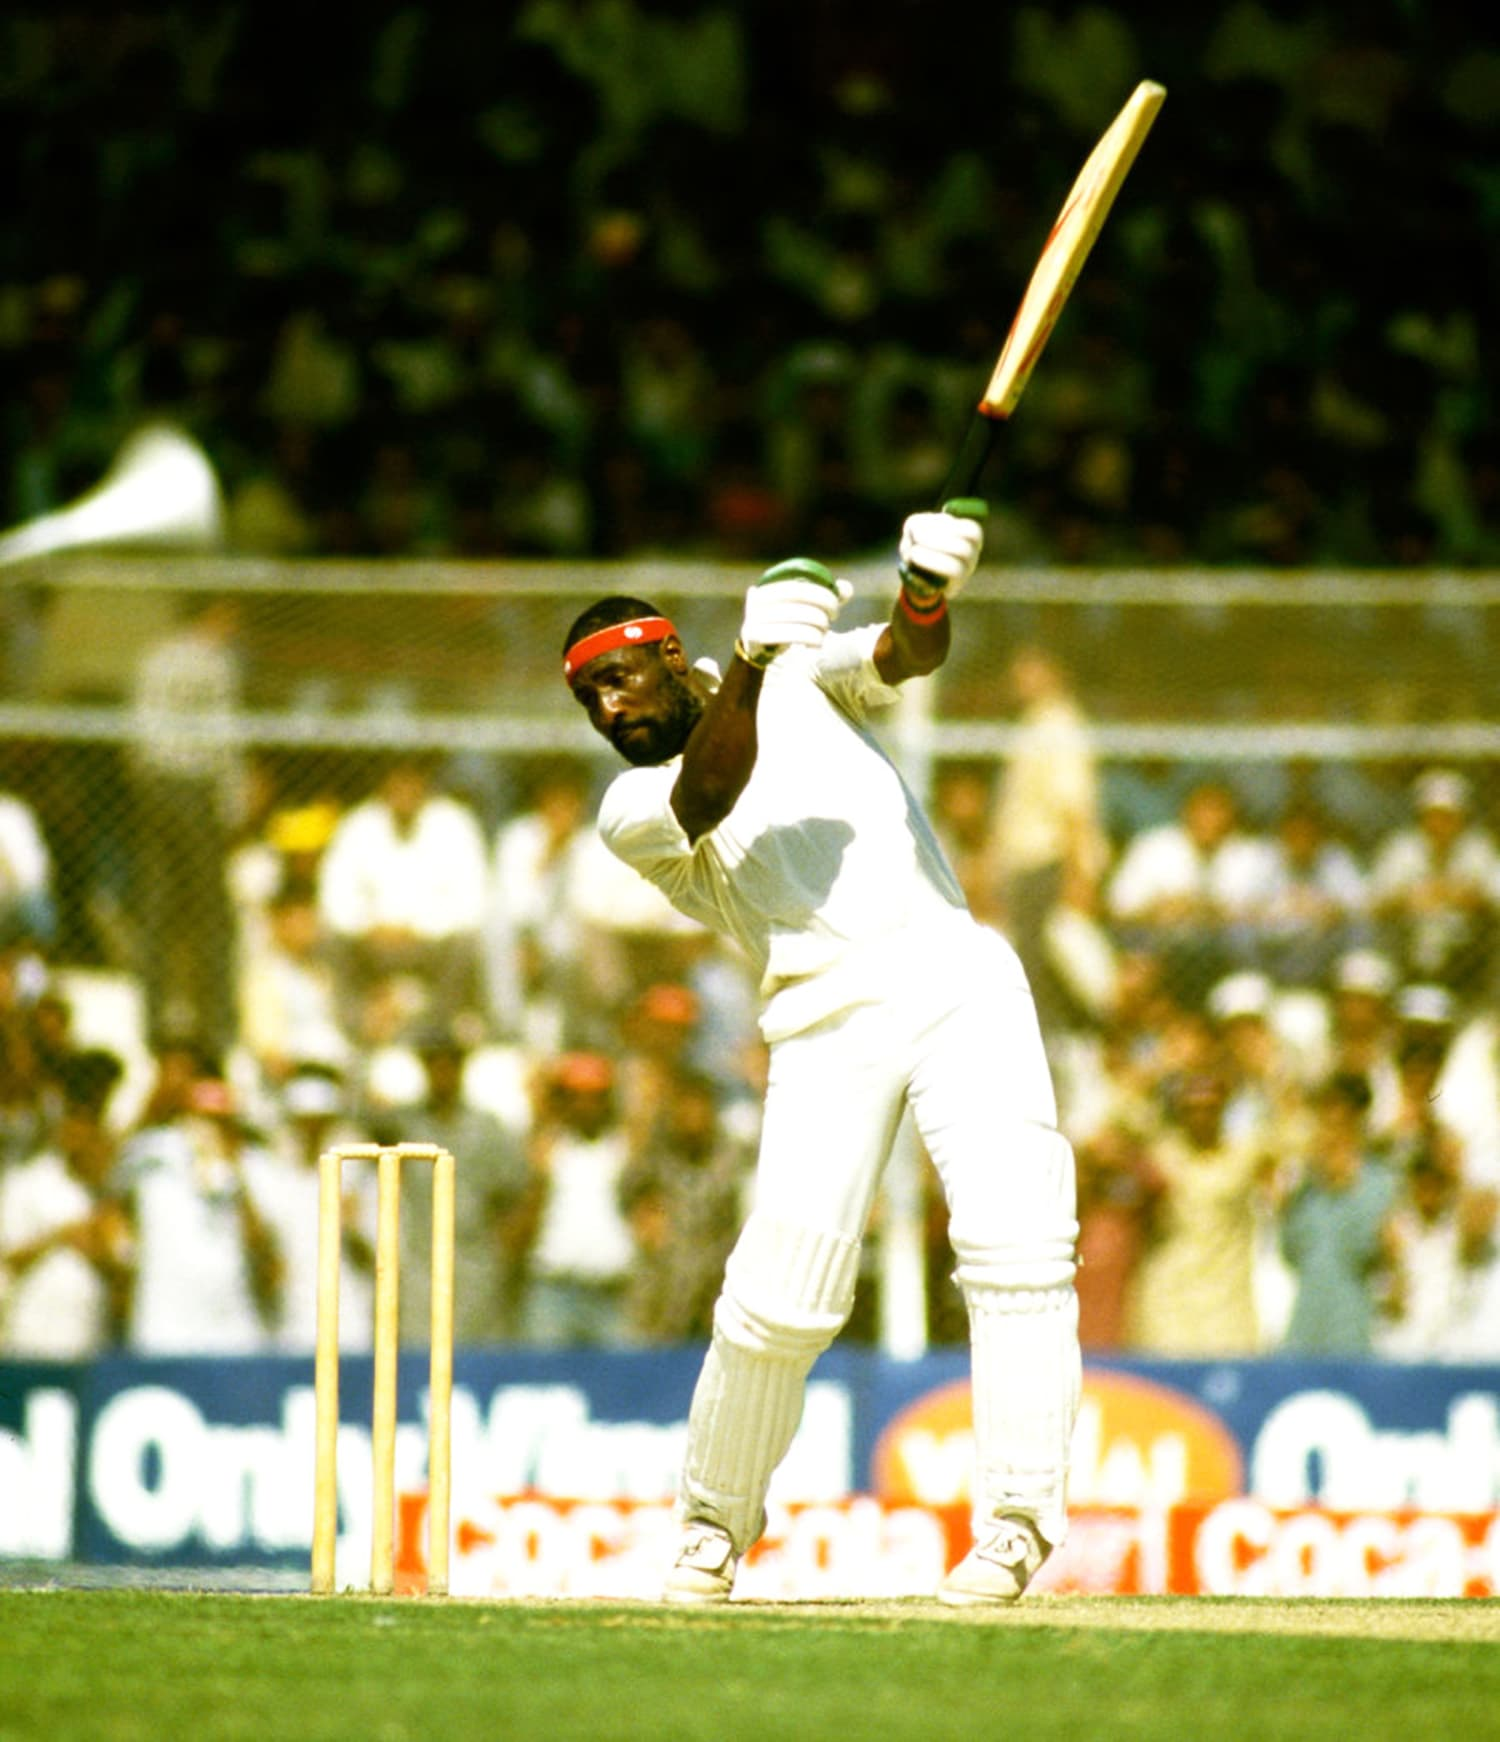 Master West Indian batsman, Viv Richards, hitting out against Pakistan at Karachi's National Stadium during the 1987 Cricket World Cup.